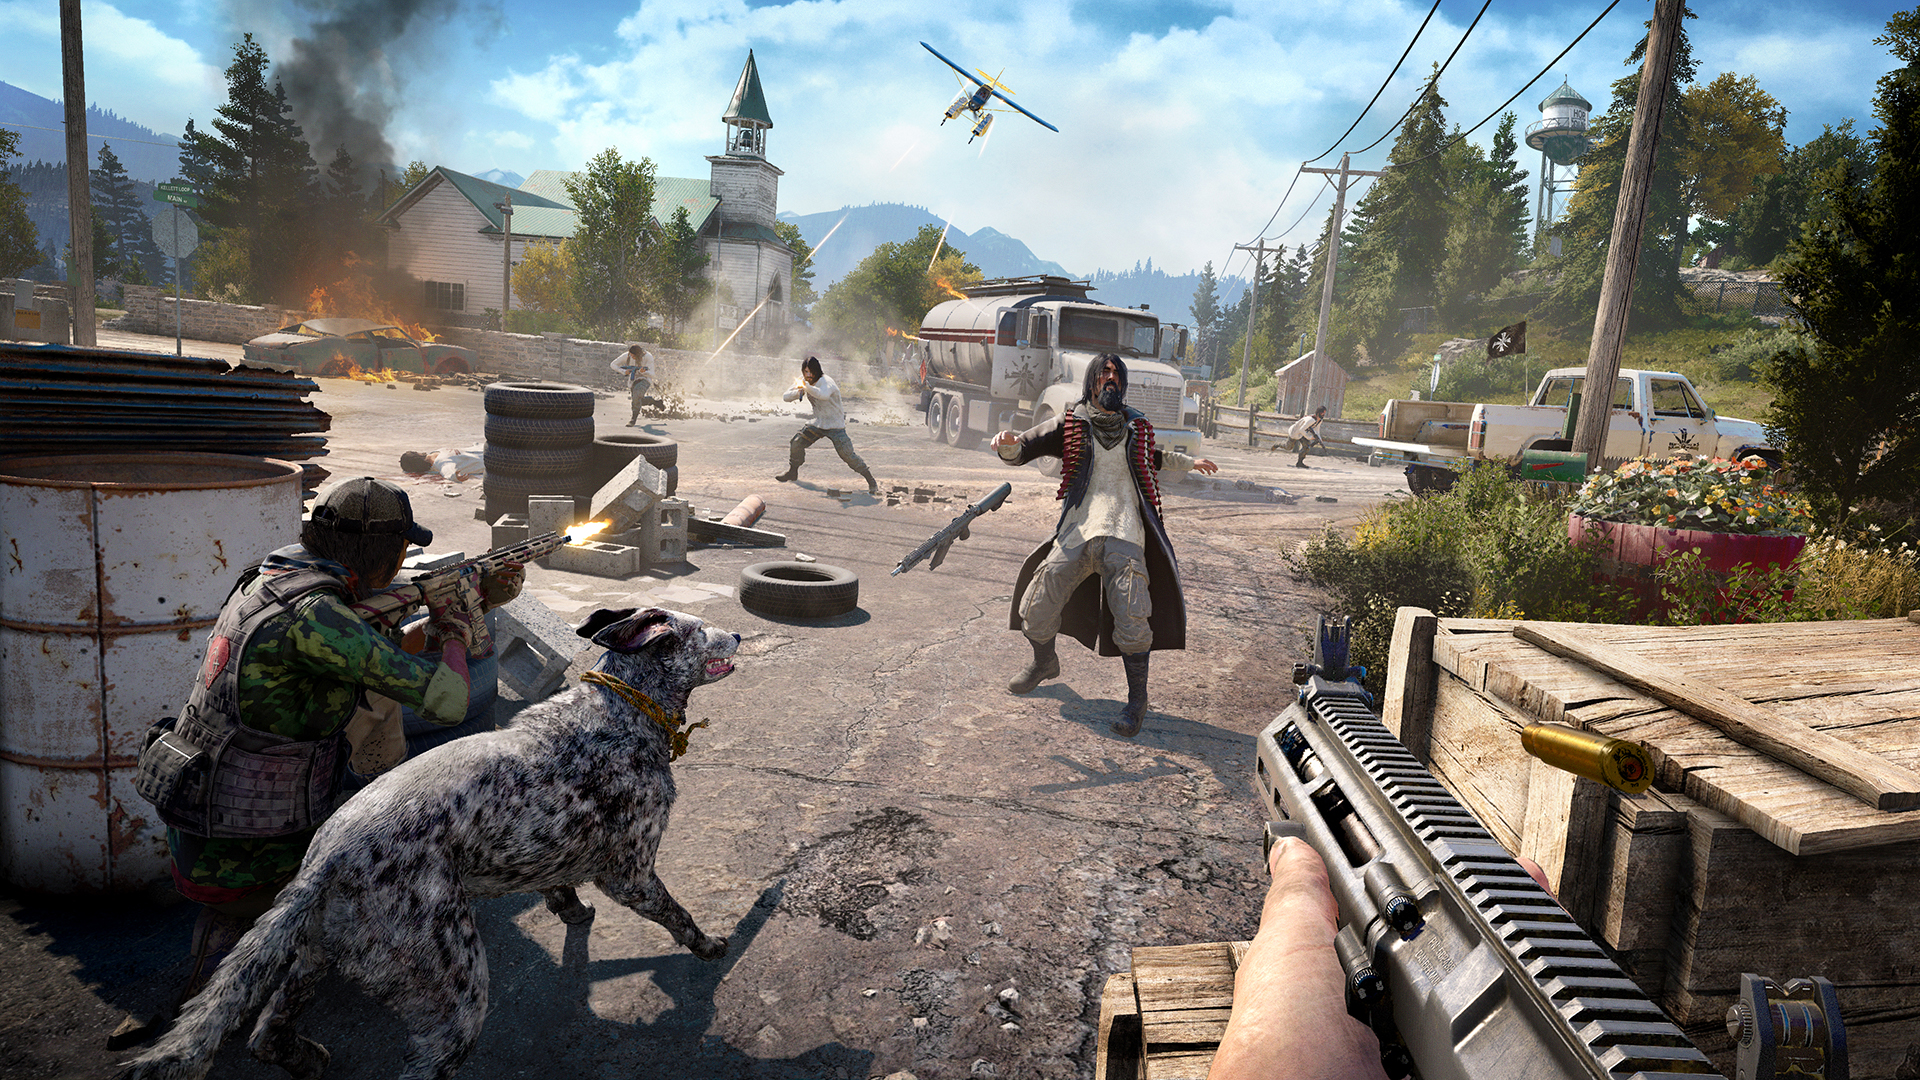 Far Cry 5 Wallpaper Hd: Far Cry 5 Wallpapers, Pictures, Images